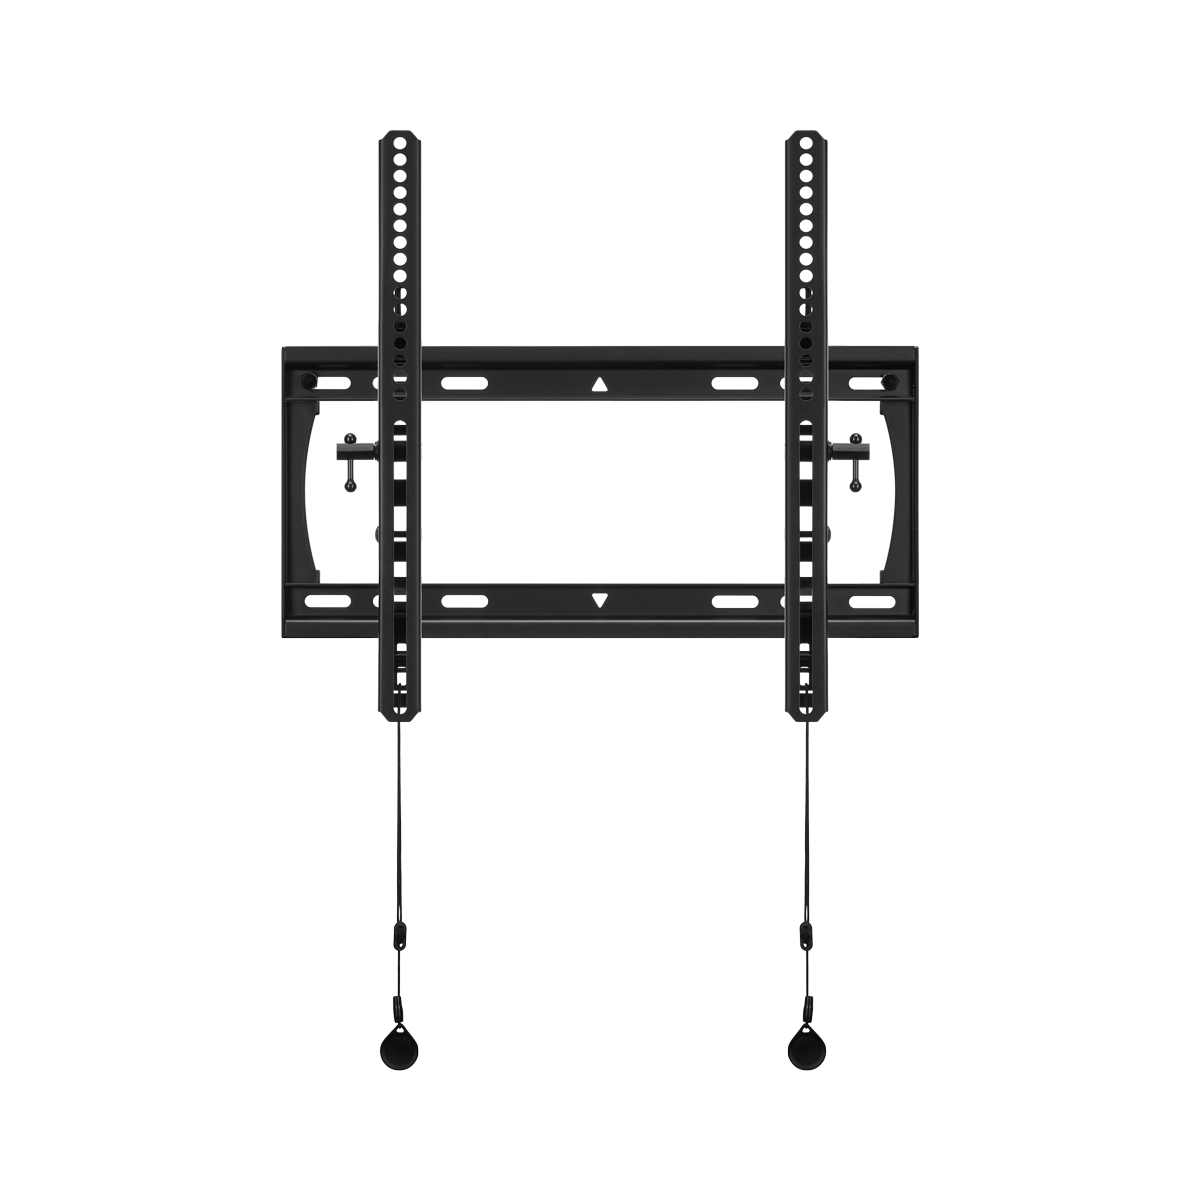 Alternate Medium Flat Full Back TV Mount